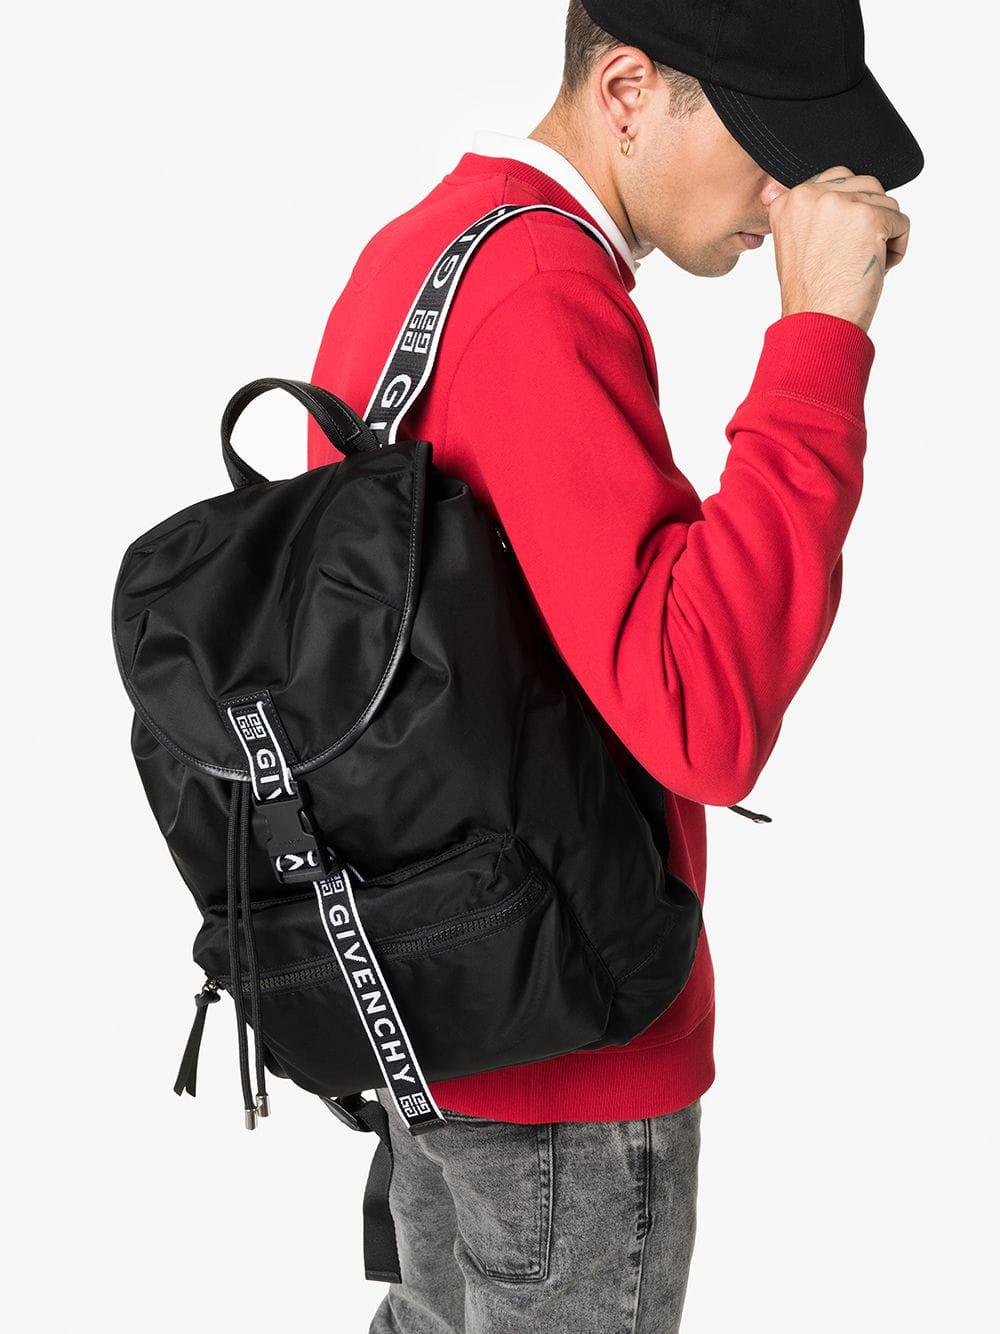 084bc2a57e Lyst - Givenchy Black Light 3 Ticker Backpack in Black for Men - Save 30%